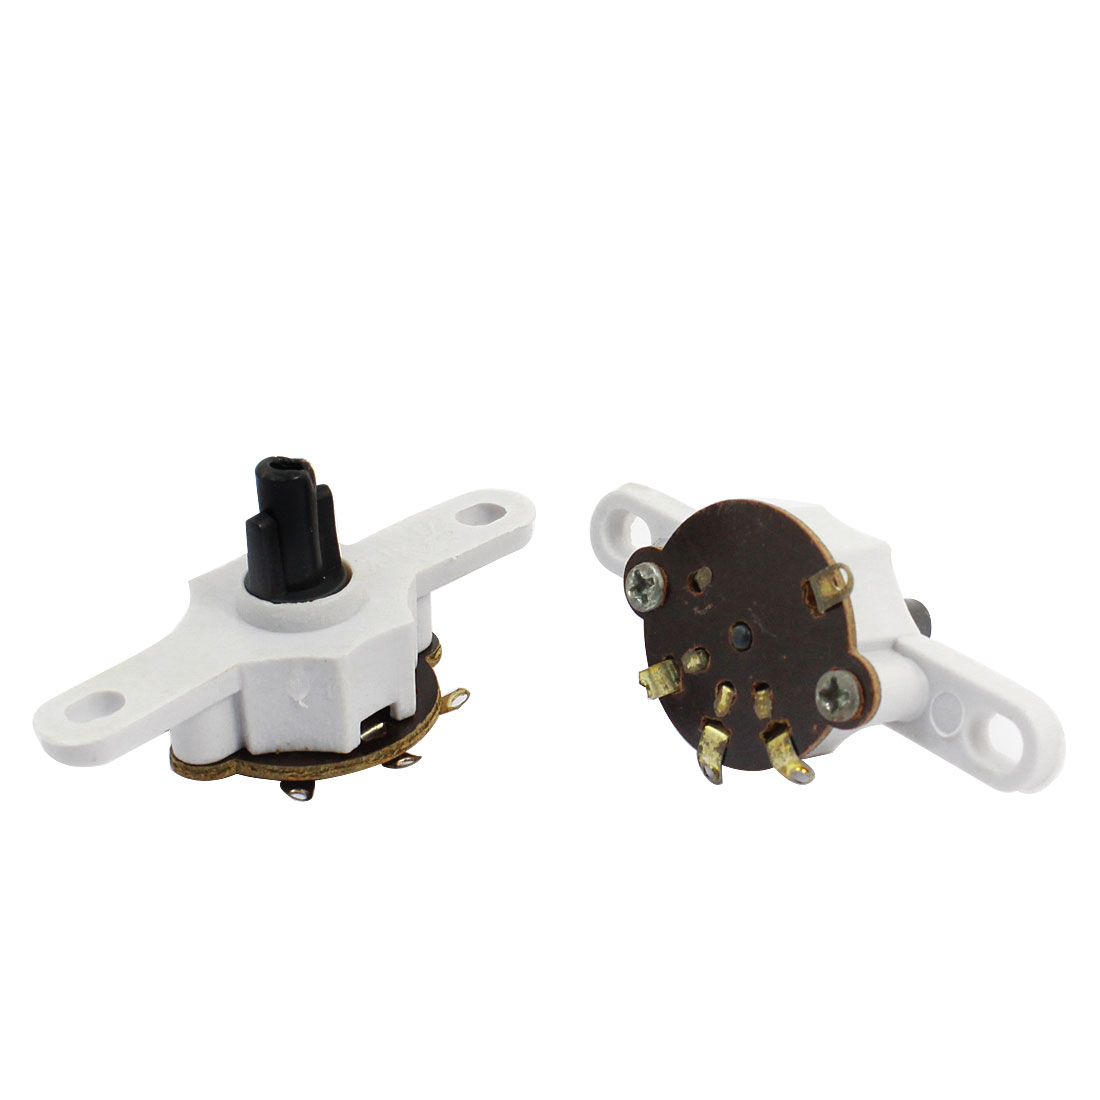 2 Pcs Home Office 4 Pin Plastic Electric Wall Fan Speed Control Switch Part White